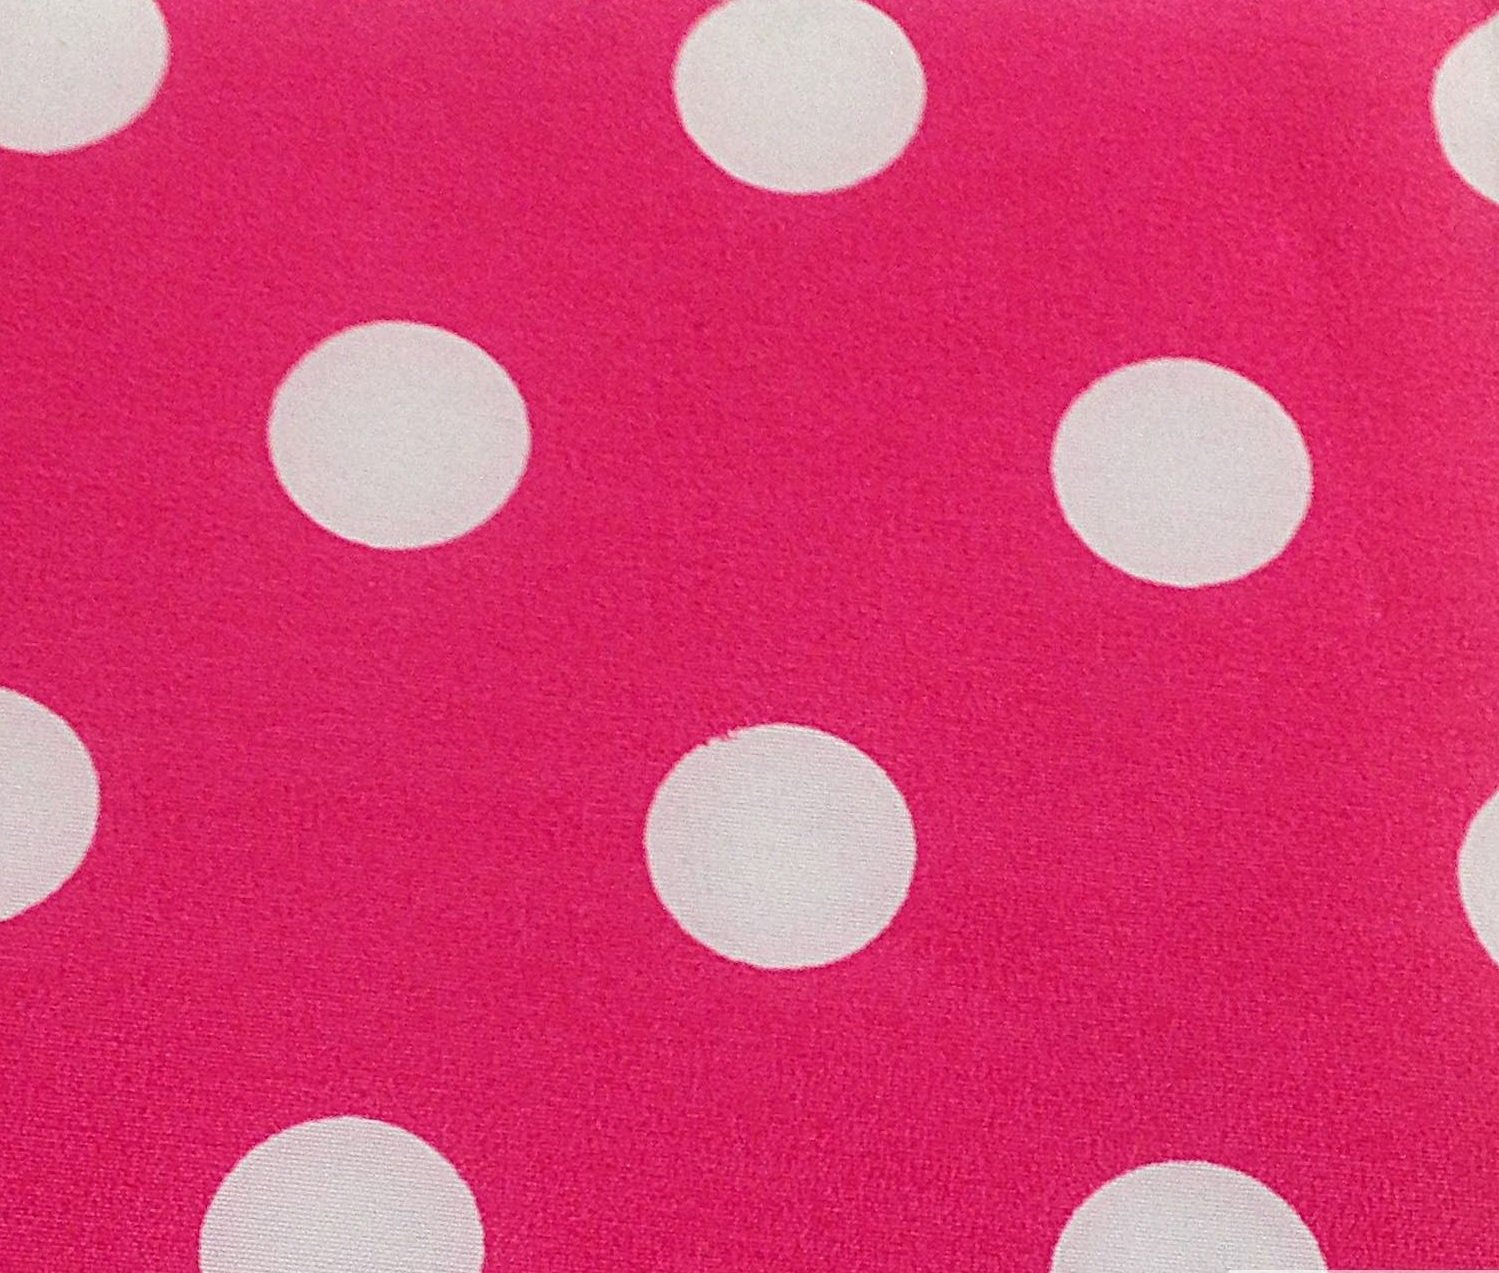 3/4th Inch Polka Dot Poly Cotton White Dot on Hot Pink 60 Inch Fabric by the Yard (F.E.) by The Fabric Exchange   B00I55JO7W